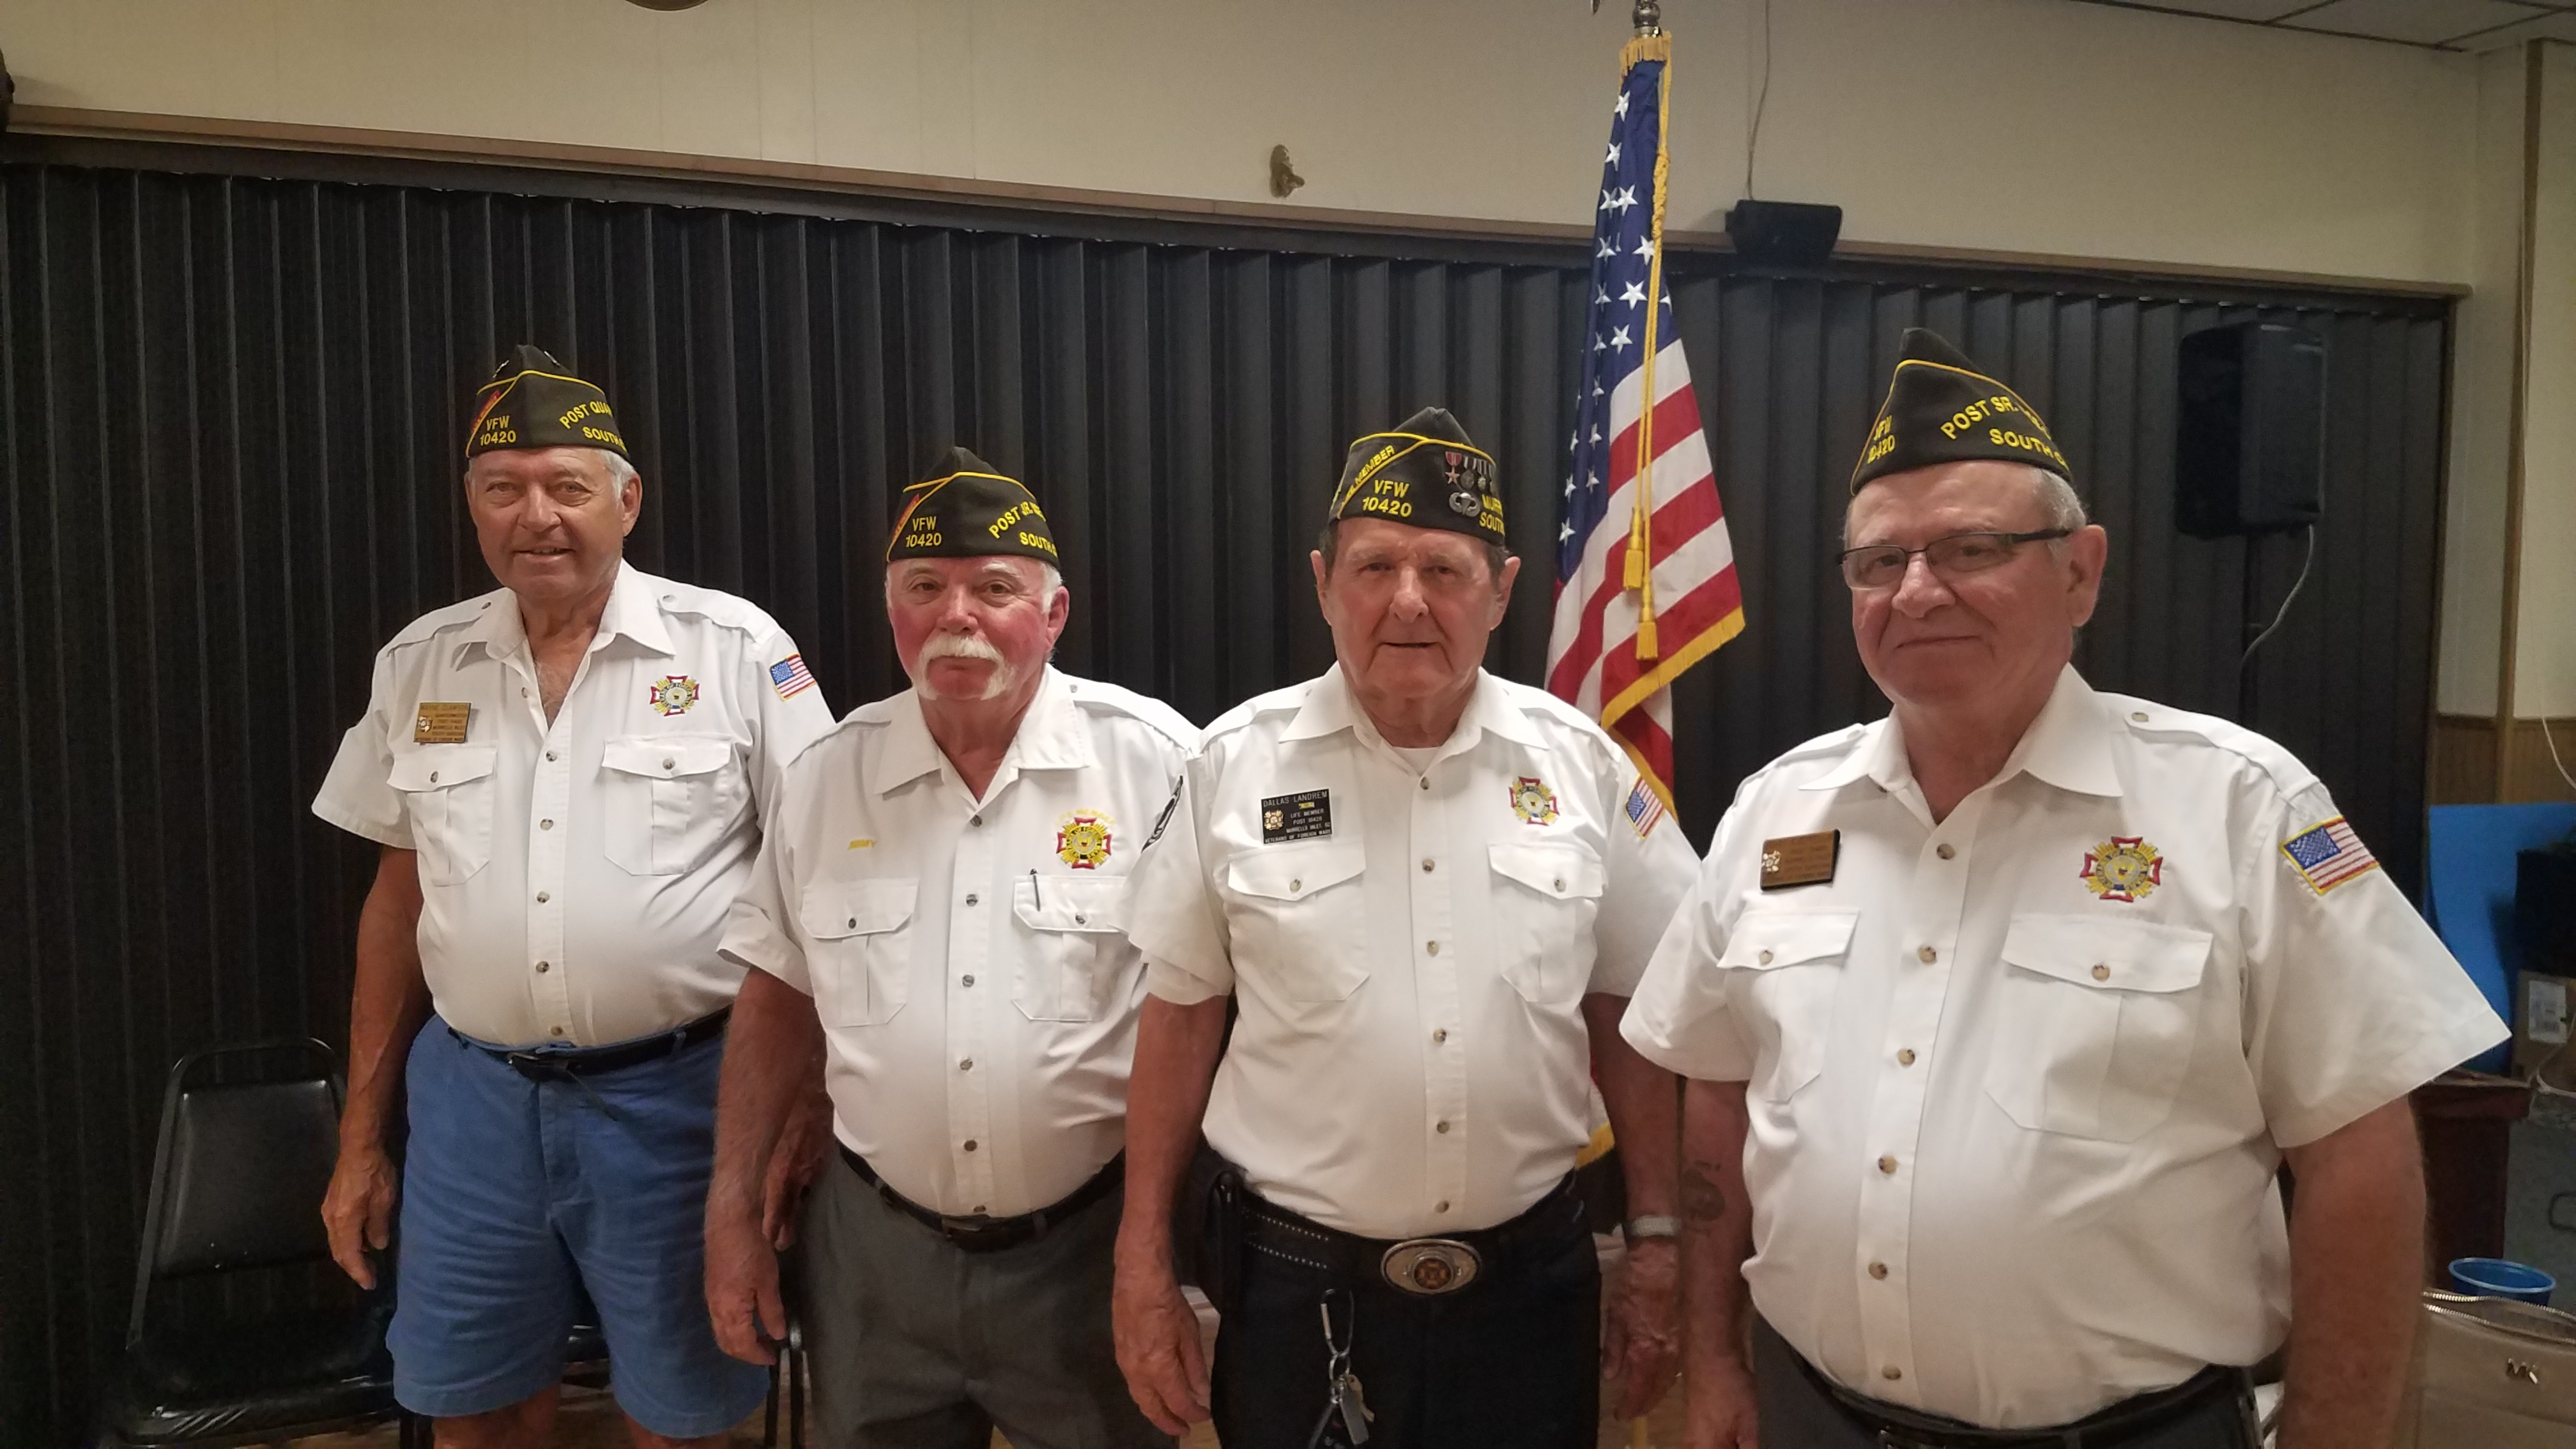 http://www.vfwpost10420.org/wp-content/uploads/2019/05/2019-Officers.jpg